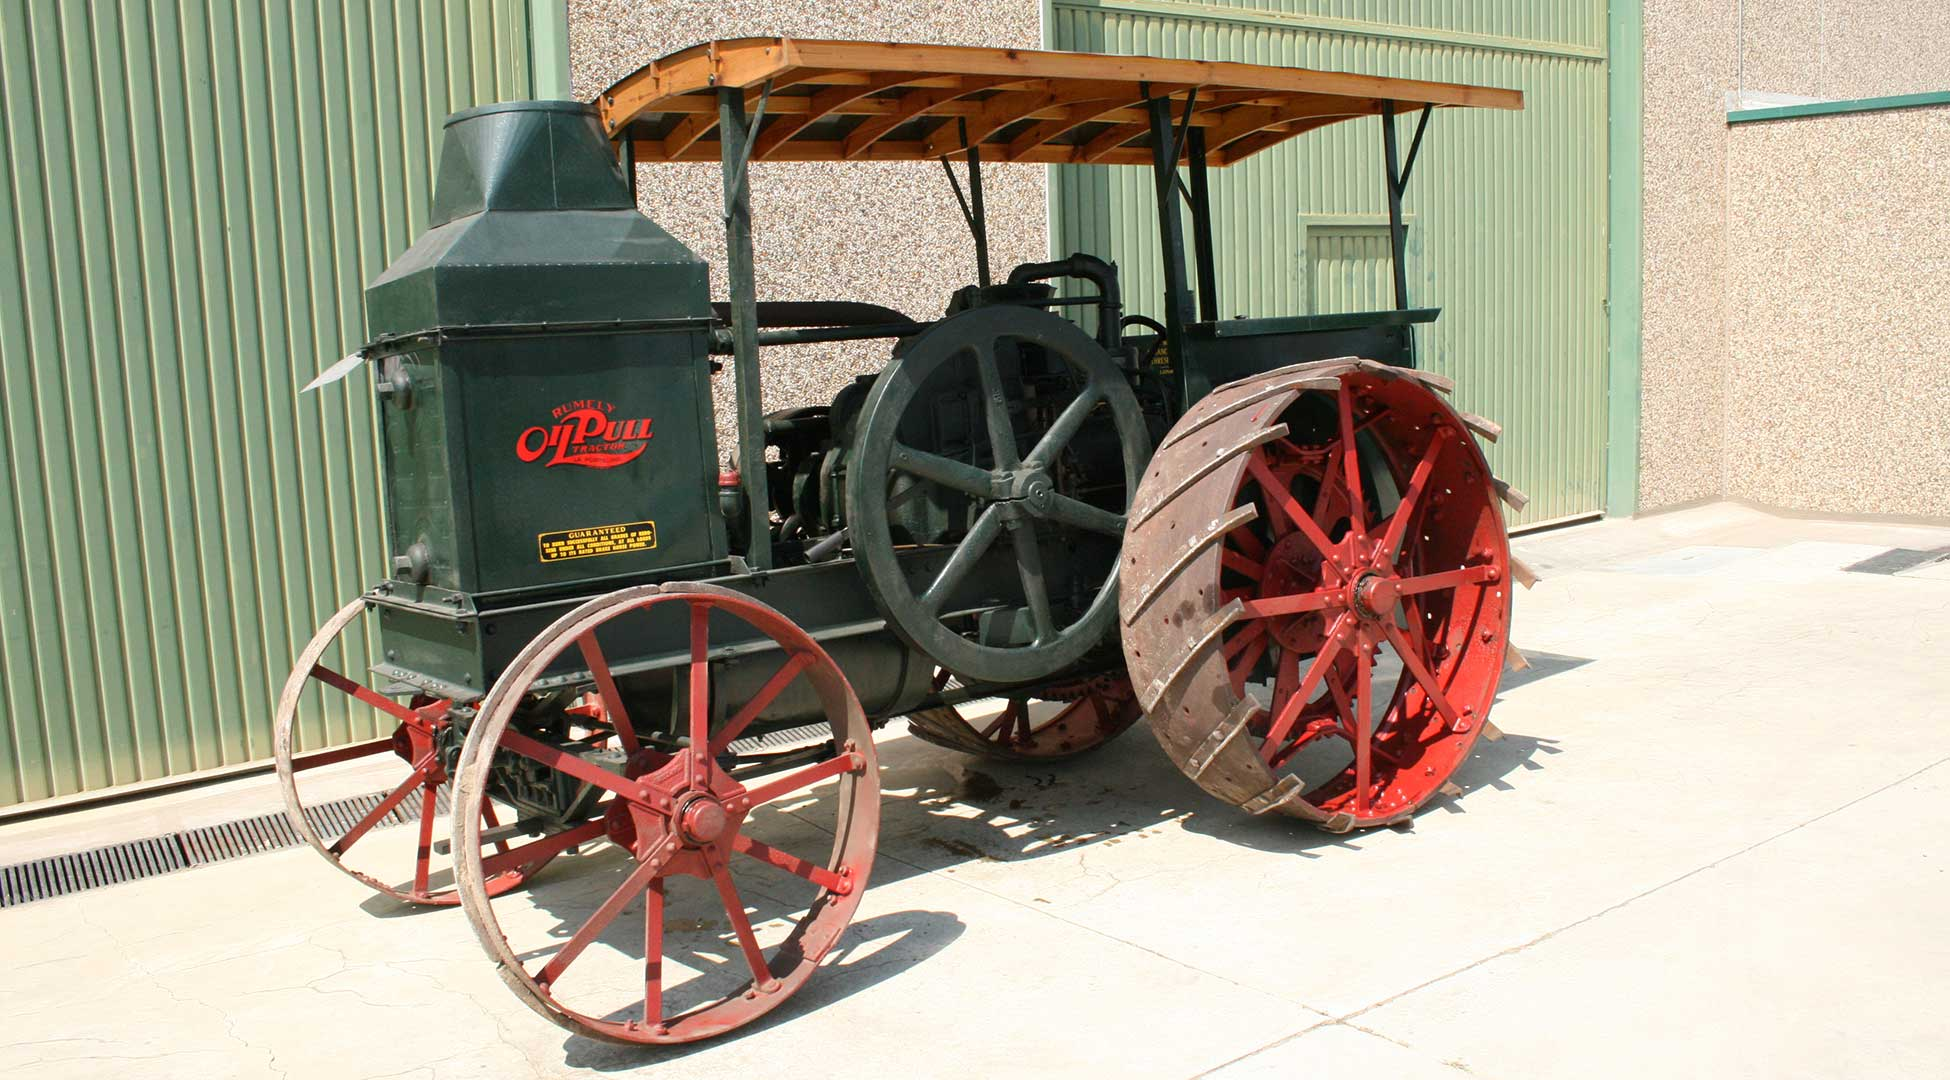 ADVANCE RUMELY Oilpull Pull Know Your Tractor Manual